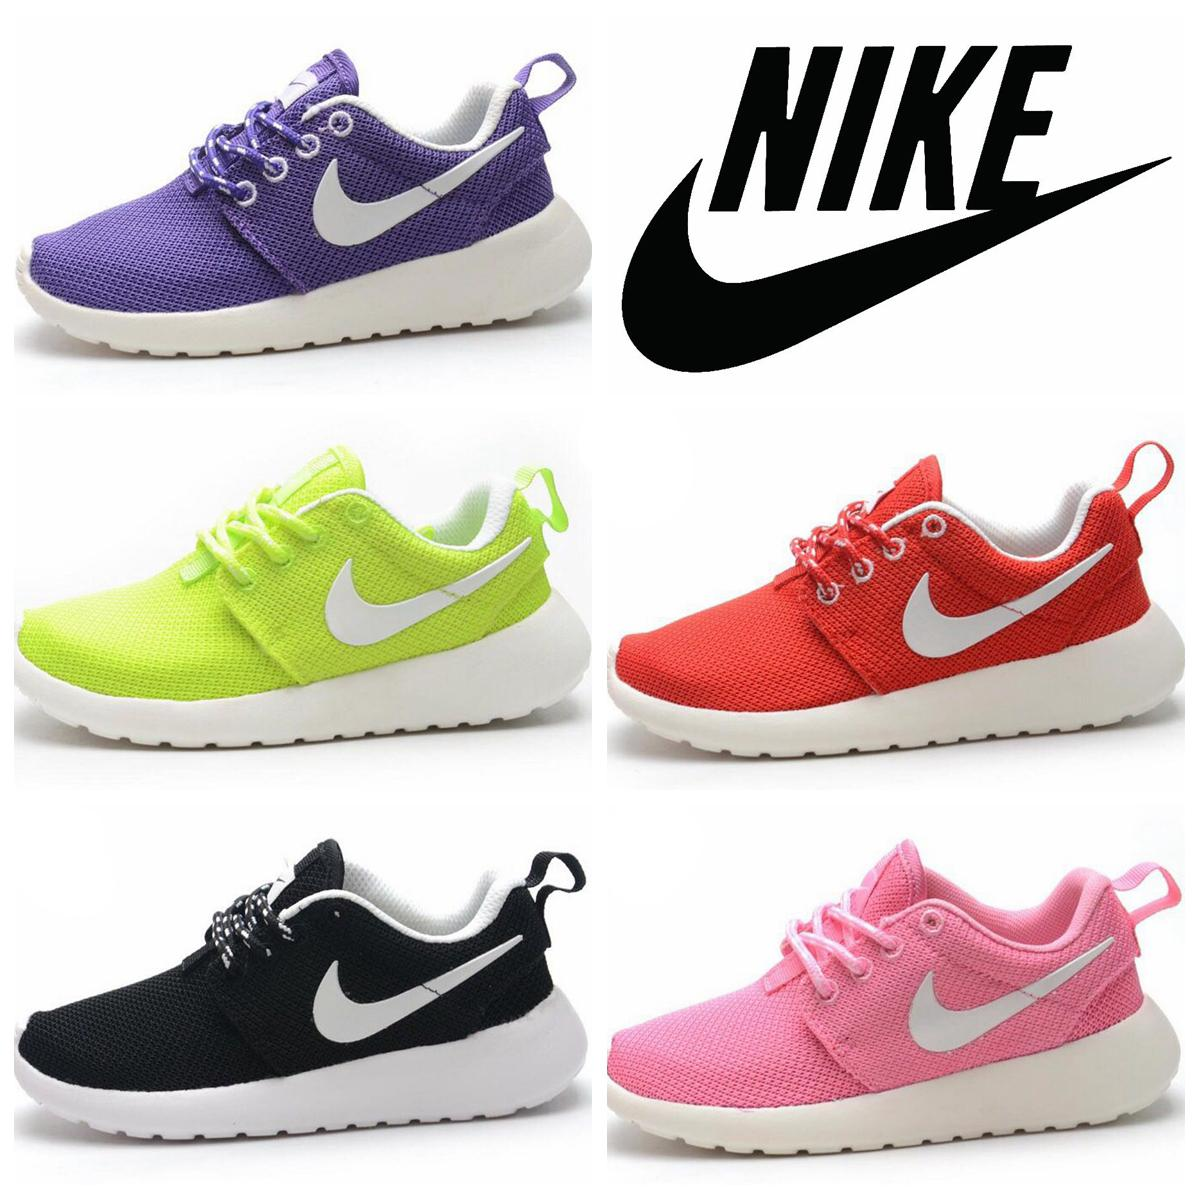 online store d2434 e746a Nike Roshe Run Childrens Athletic Shoes Boys And Girls Running Shoes Kids  Casual Boots Babys Sneakers Sport Shoes Size 9c 3y Kids Footwear Black  Running ...